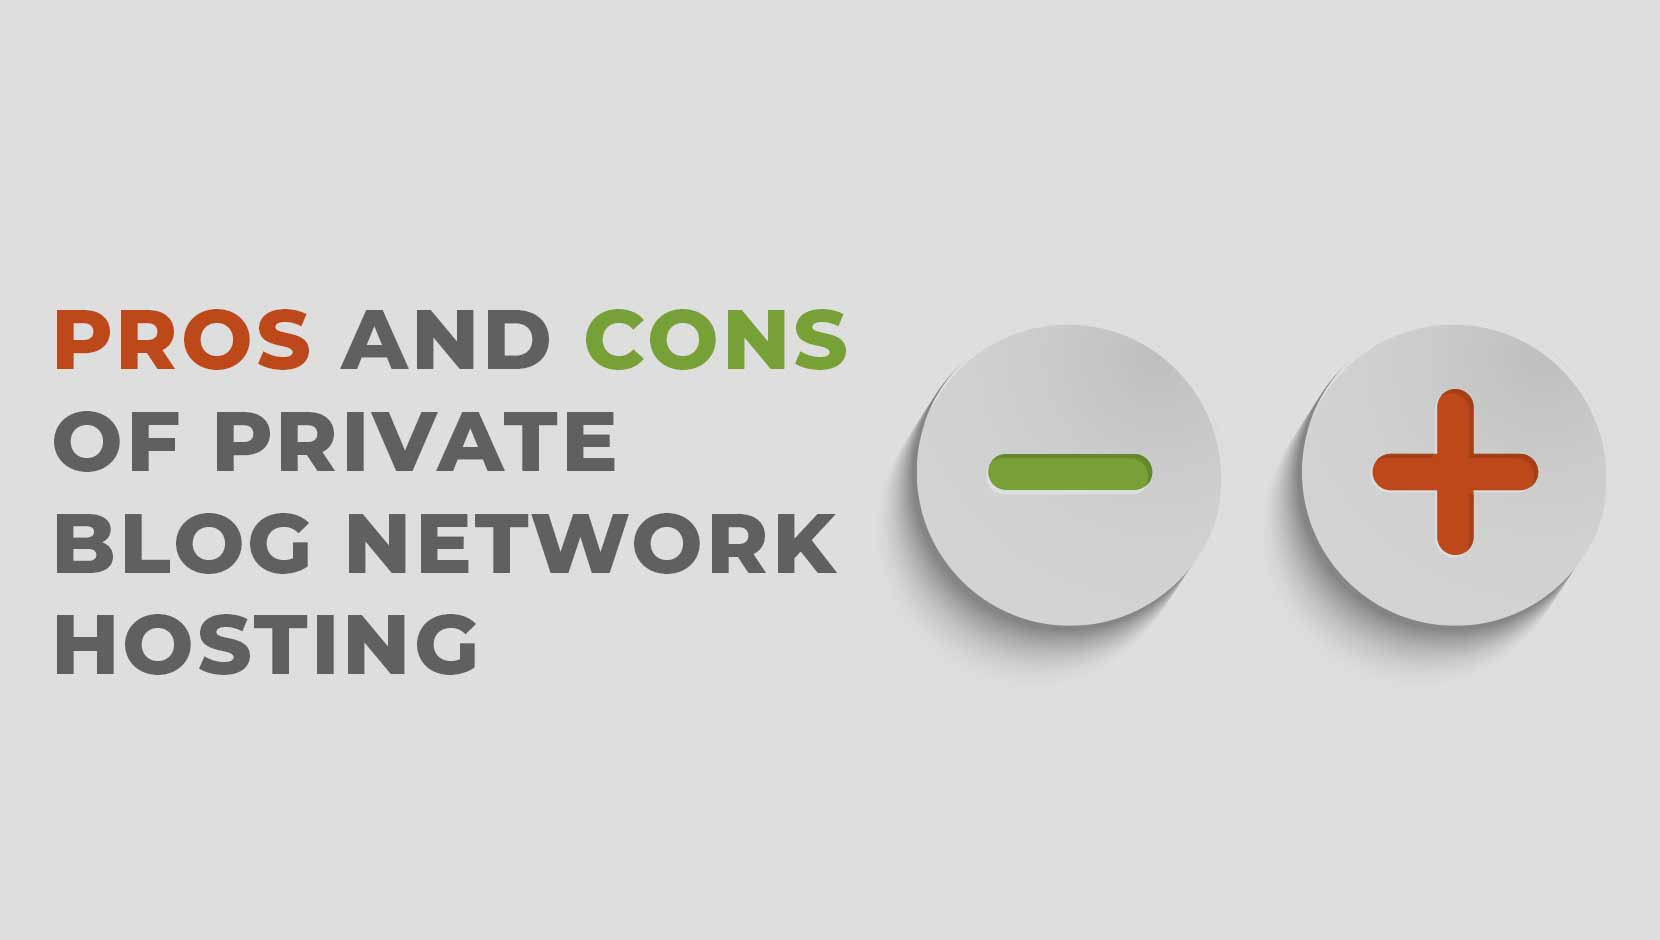 The Pros and Cons of Private Blog Network Hosting